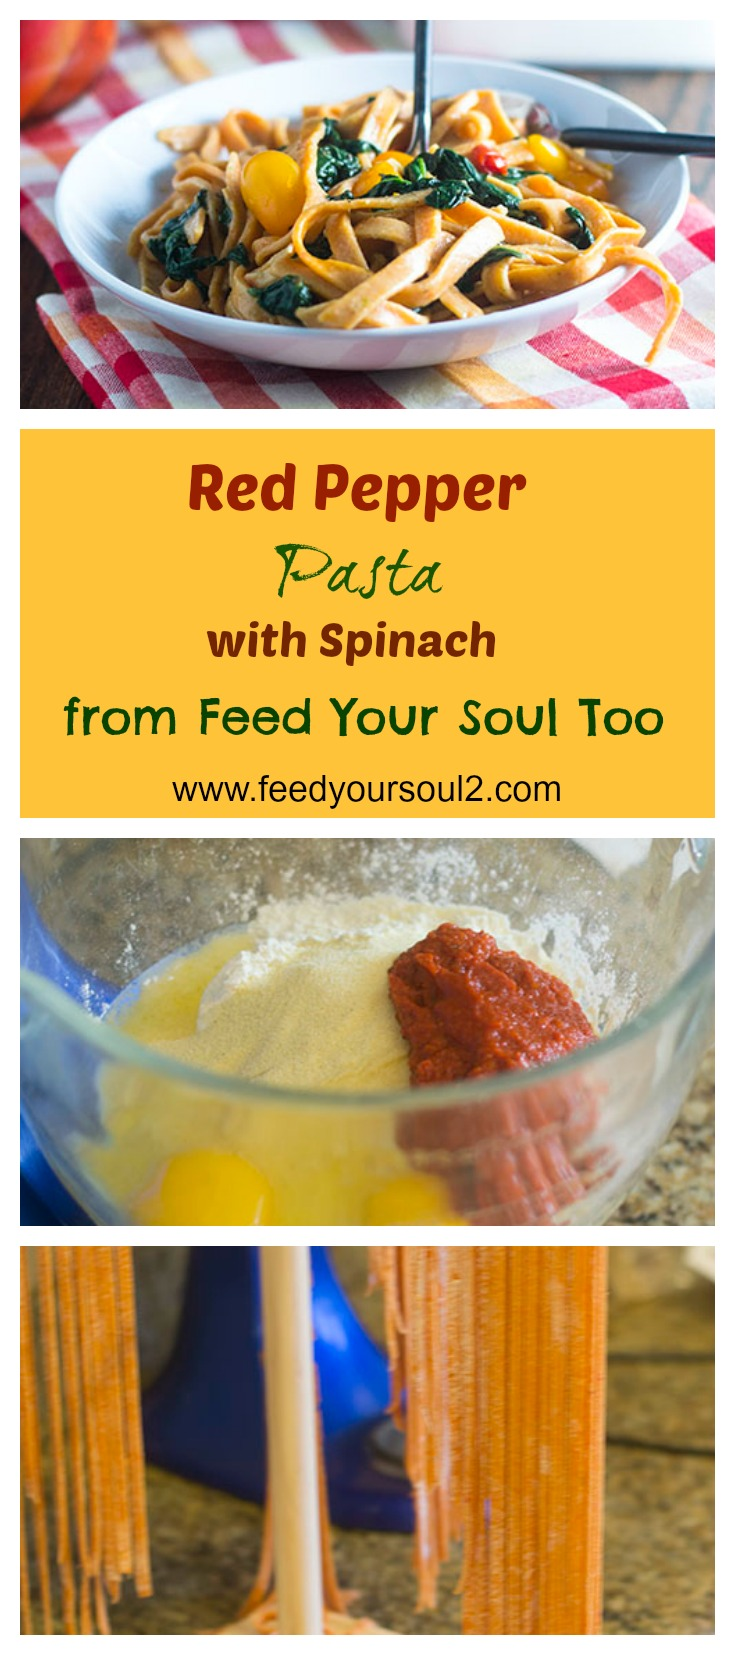 Red Pepper Pasta with Spinach #pasta #redpepper #Italianfood | feedyoursoul2.com